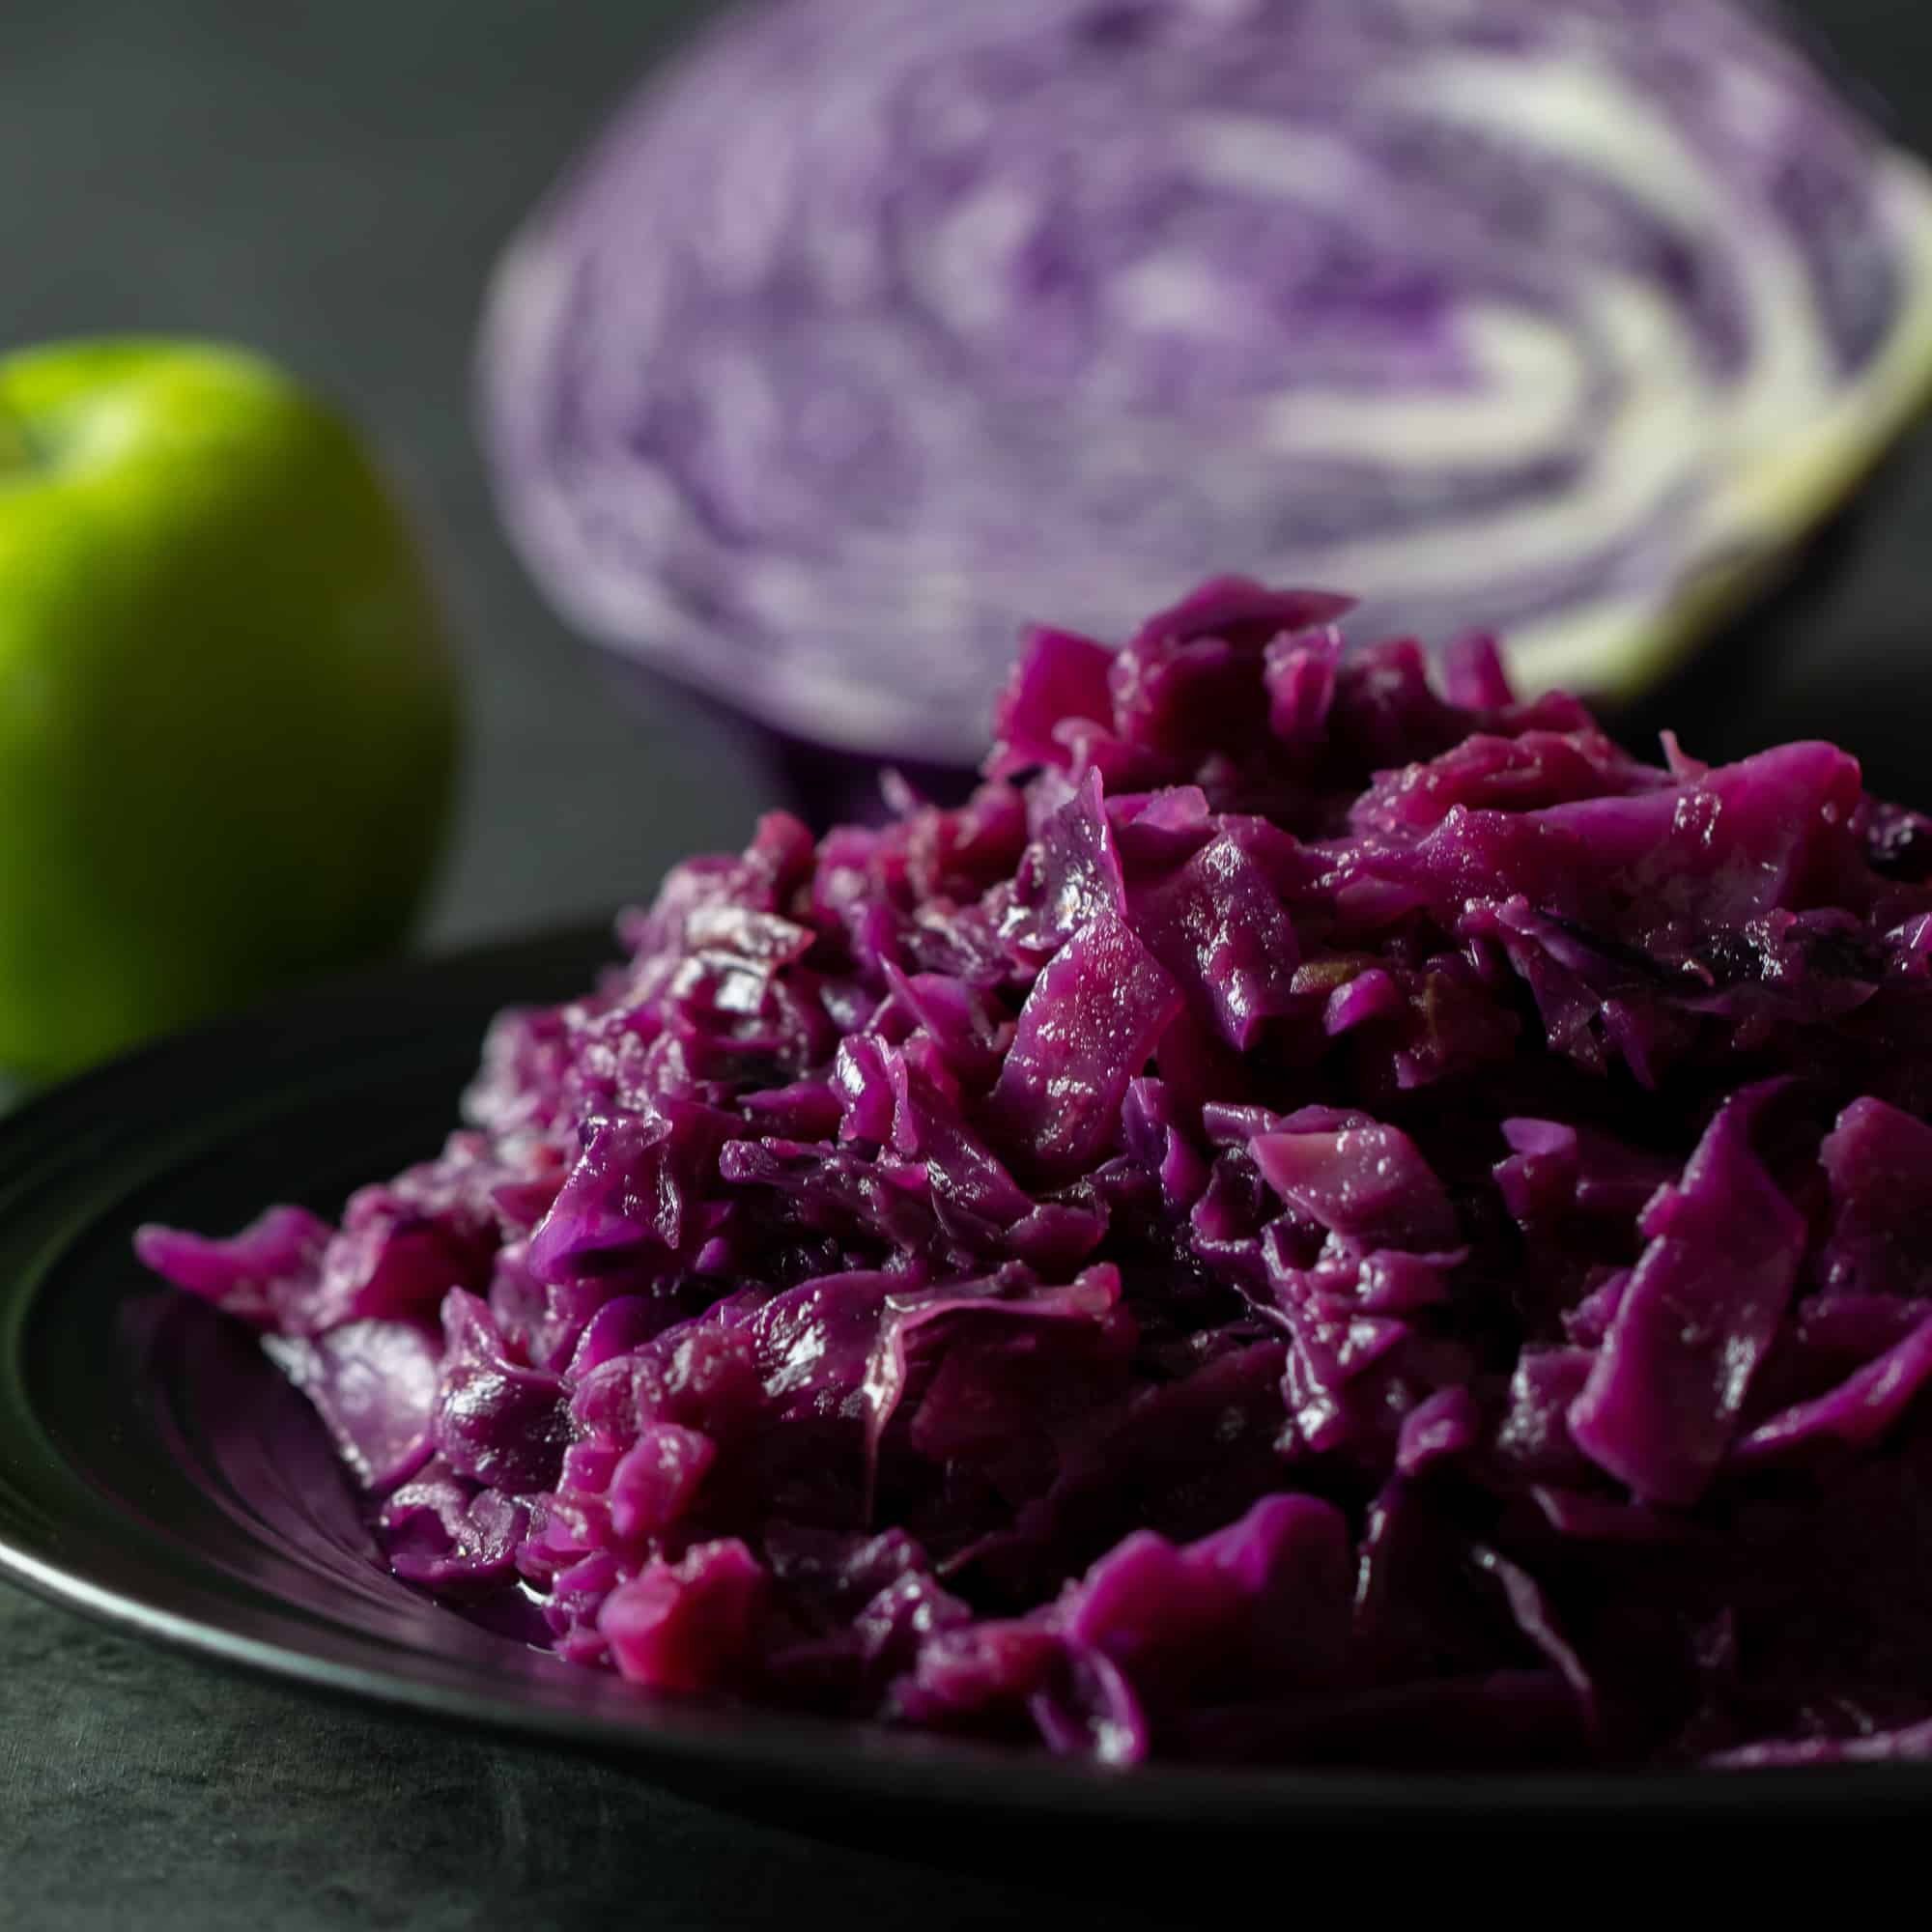 Square image of a plate of the red cabbage and apples.